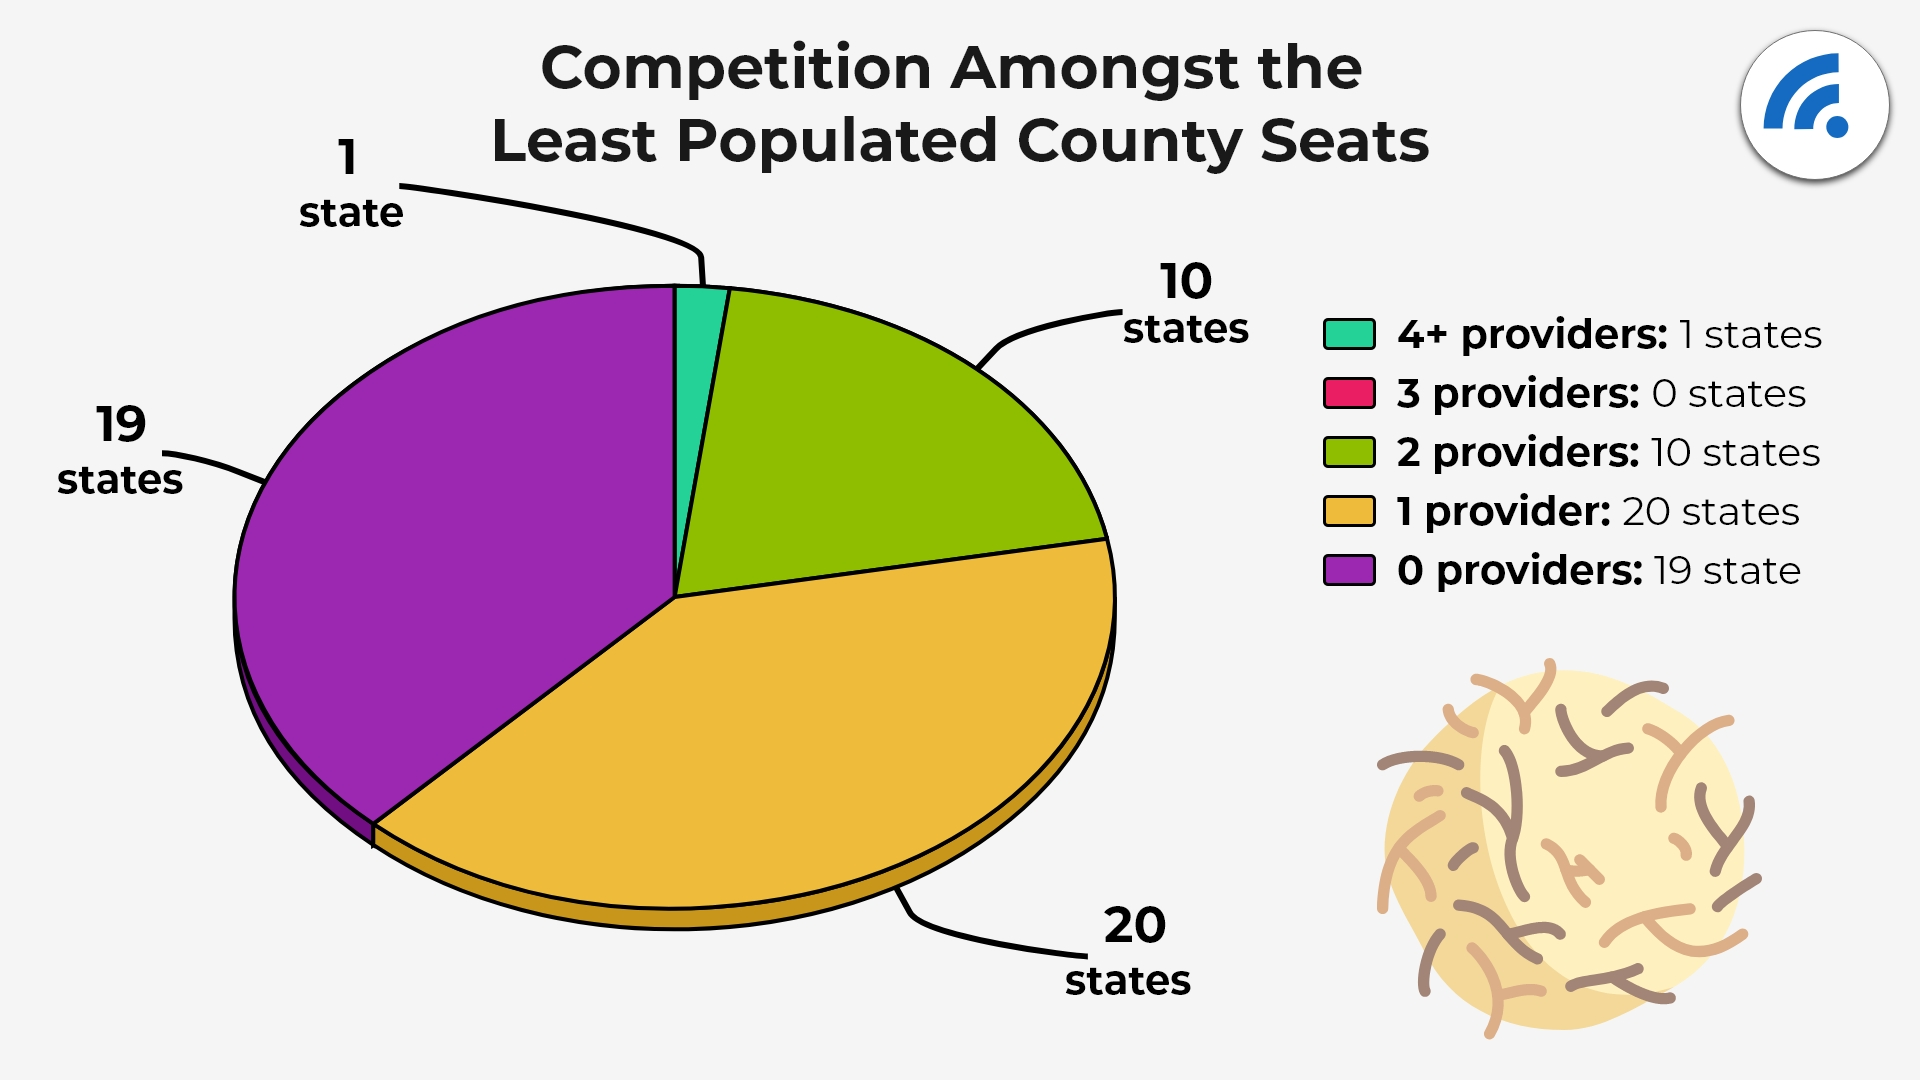 Competition Among the Least Populated County Seats